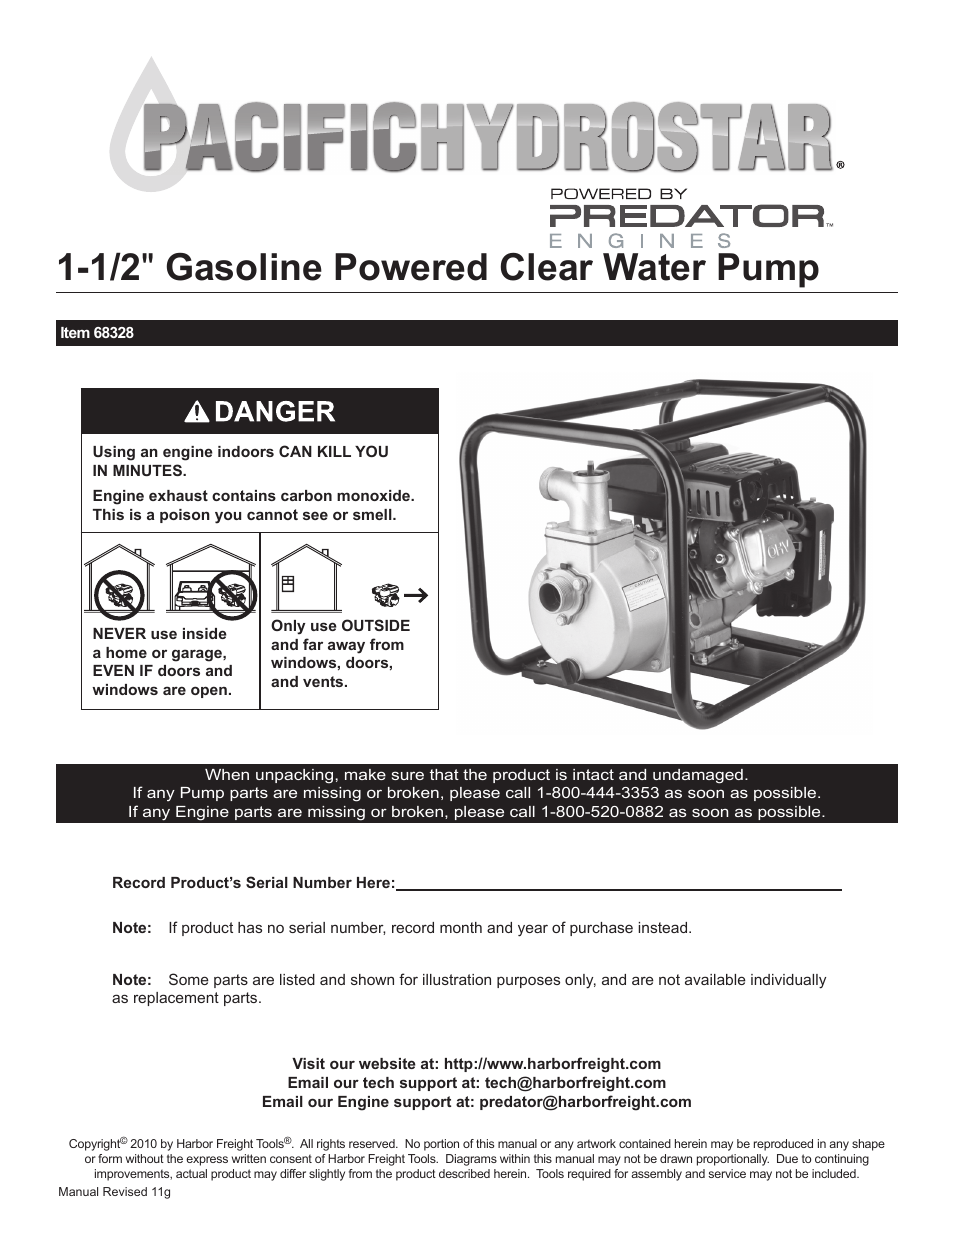 medium resolution of harbor freight tools pacific hydrostar 1 1 2 gasoline powered clear water pump 68328 user manual 24 pages